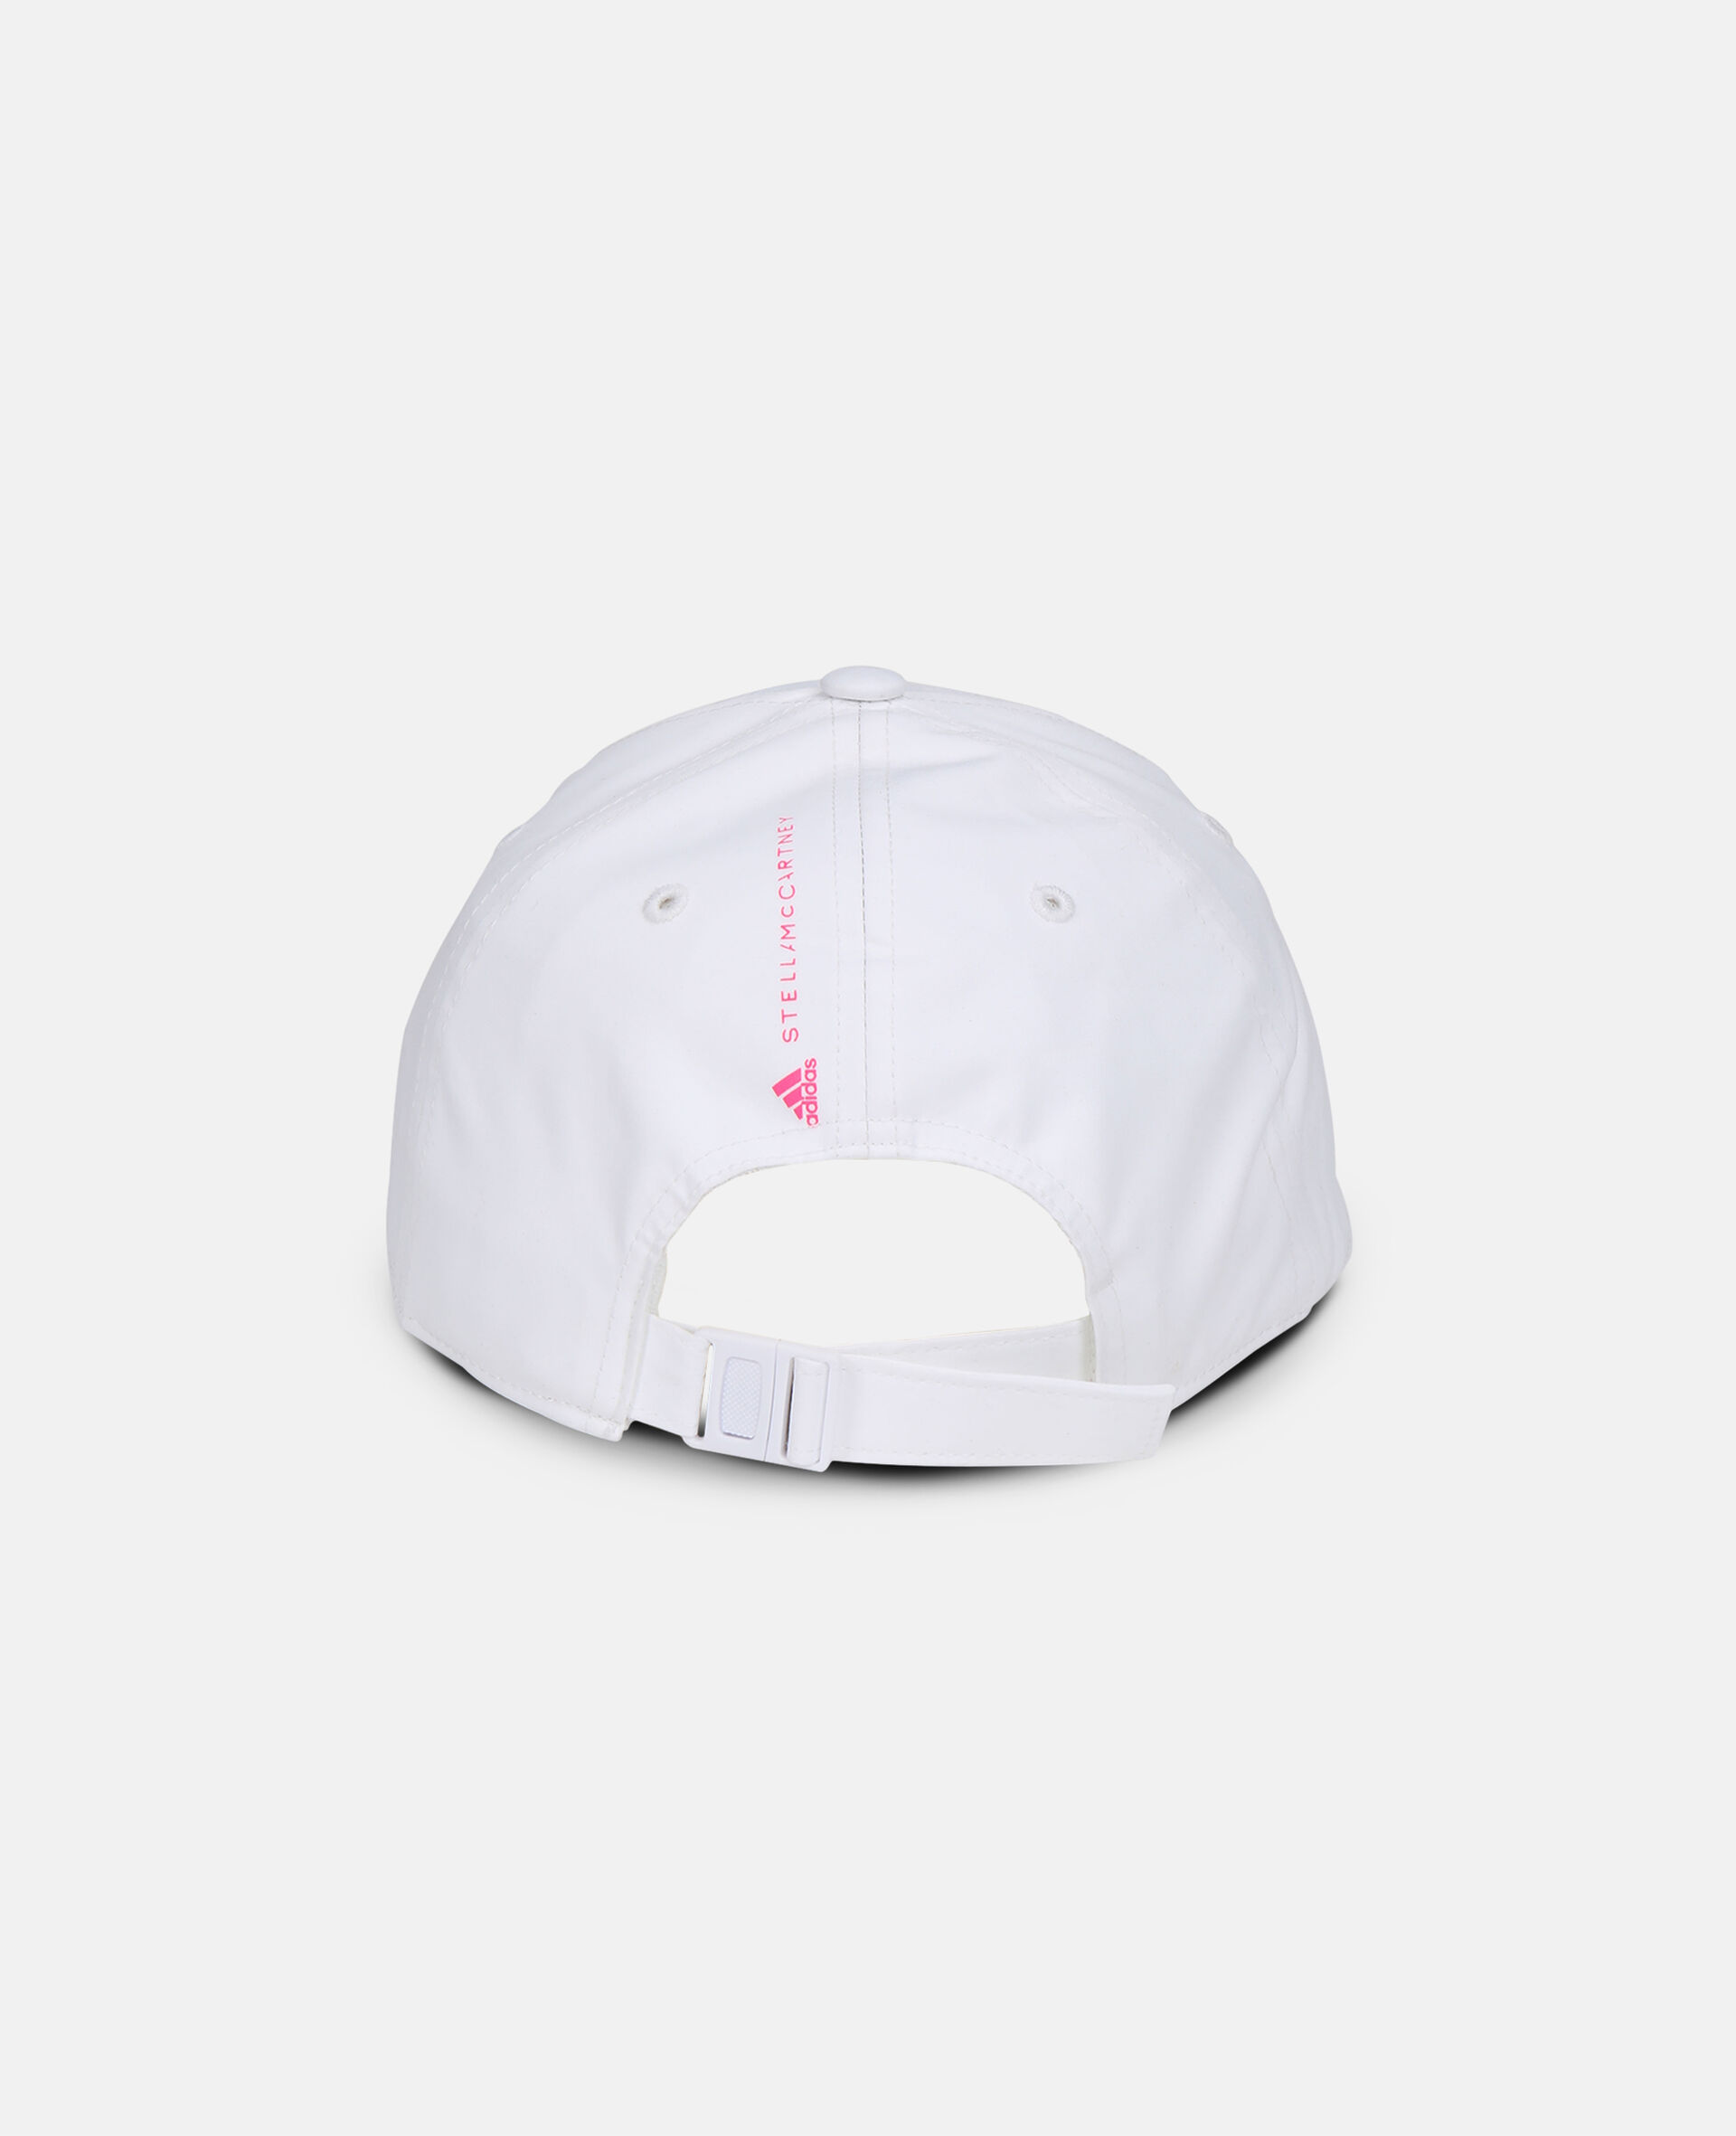 White Cap-White-large image number 1